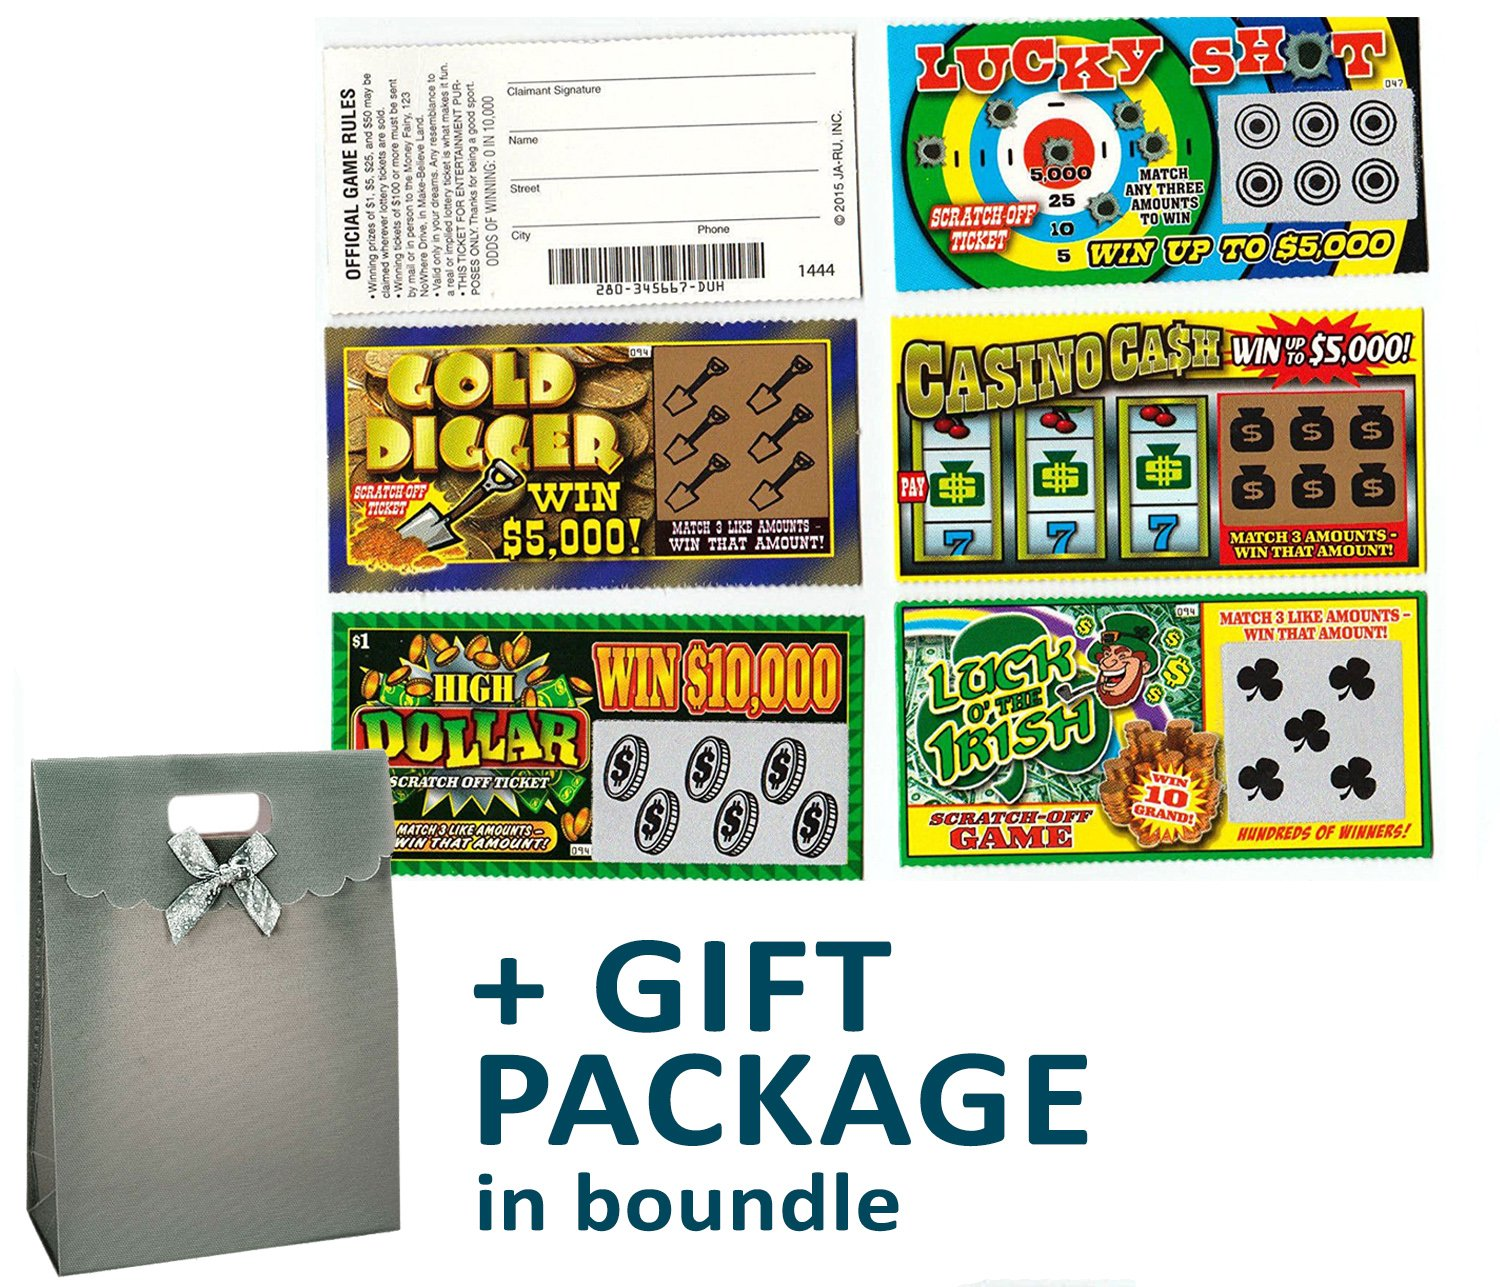 JA-RU Jokes and Gags Fake Lottery Tickets Party Favor Bundle Pack